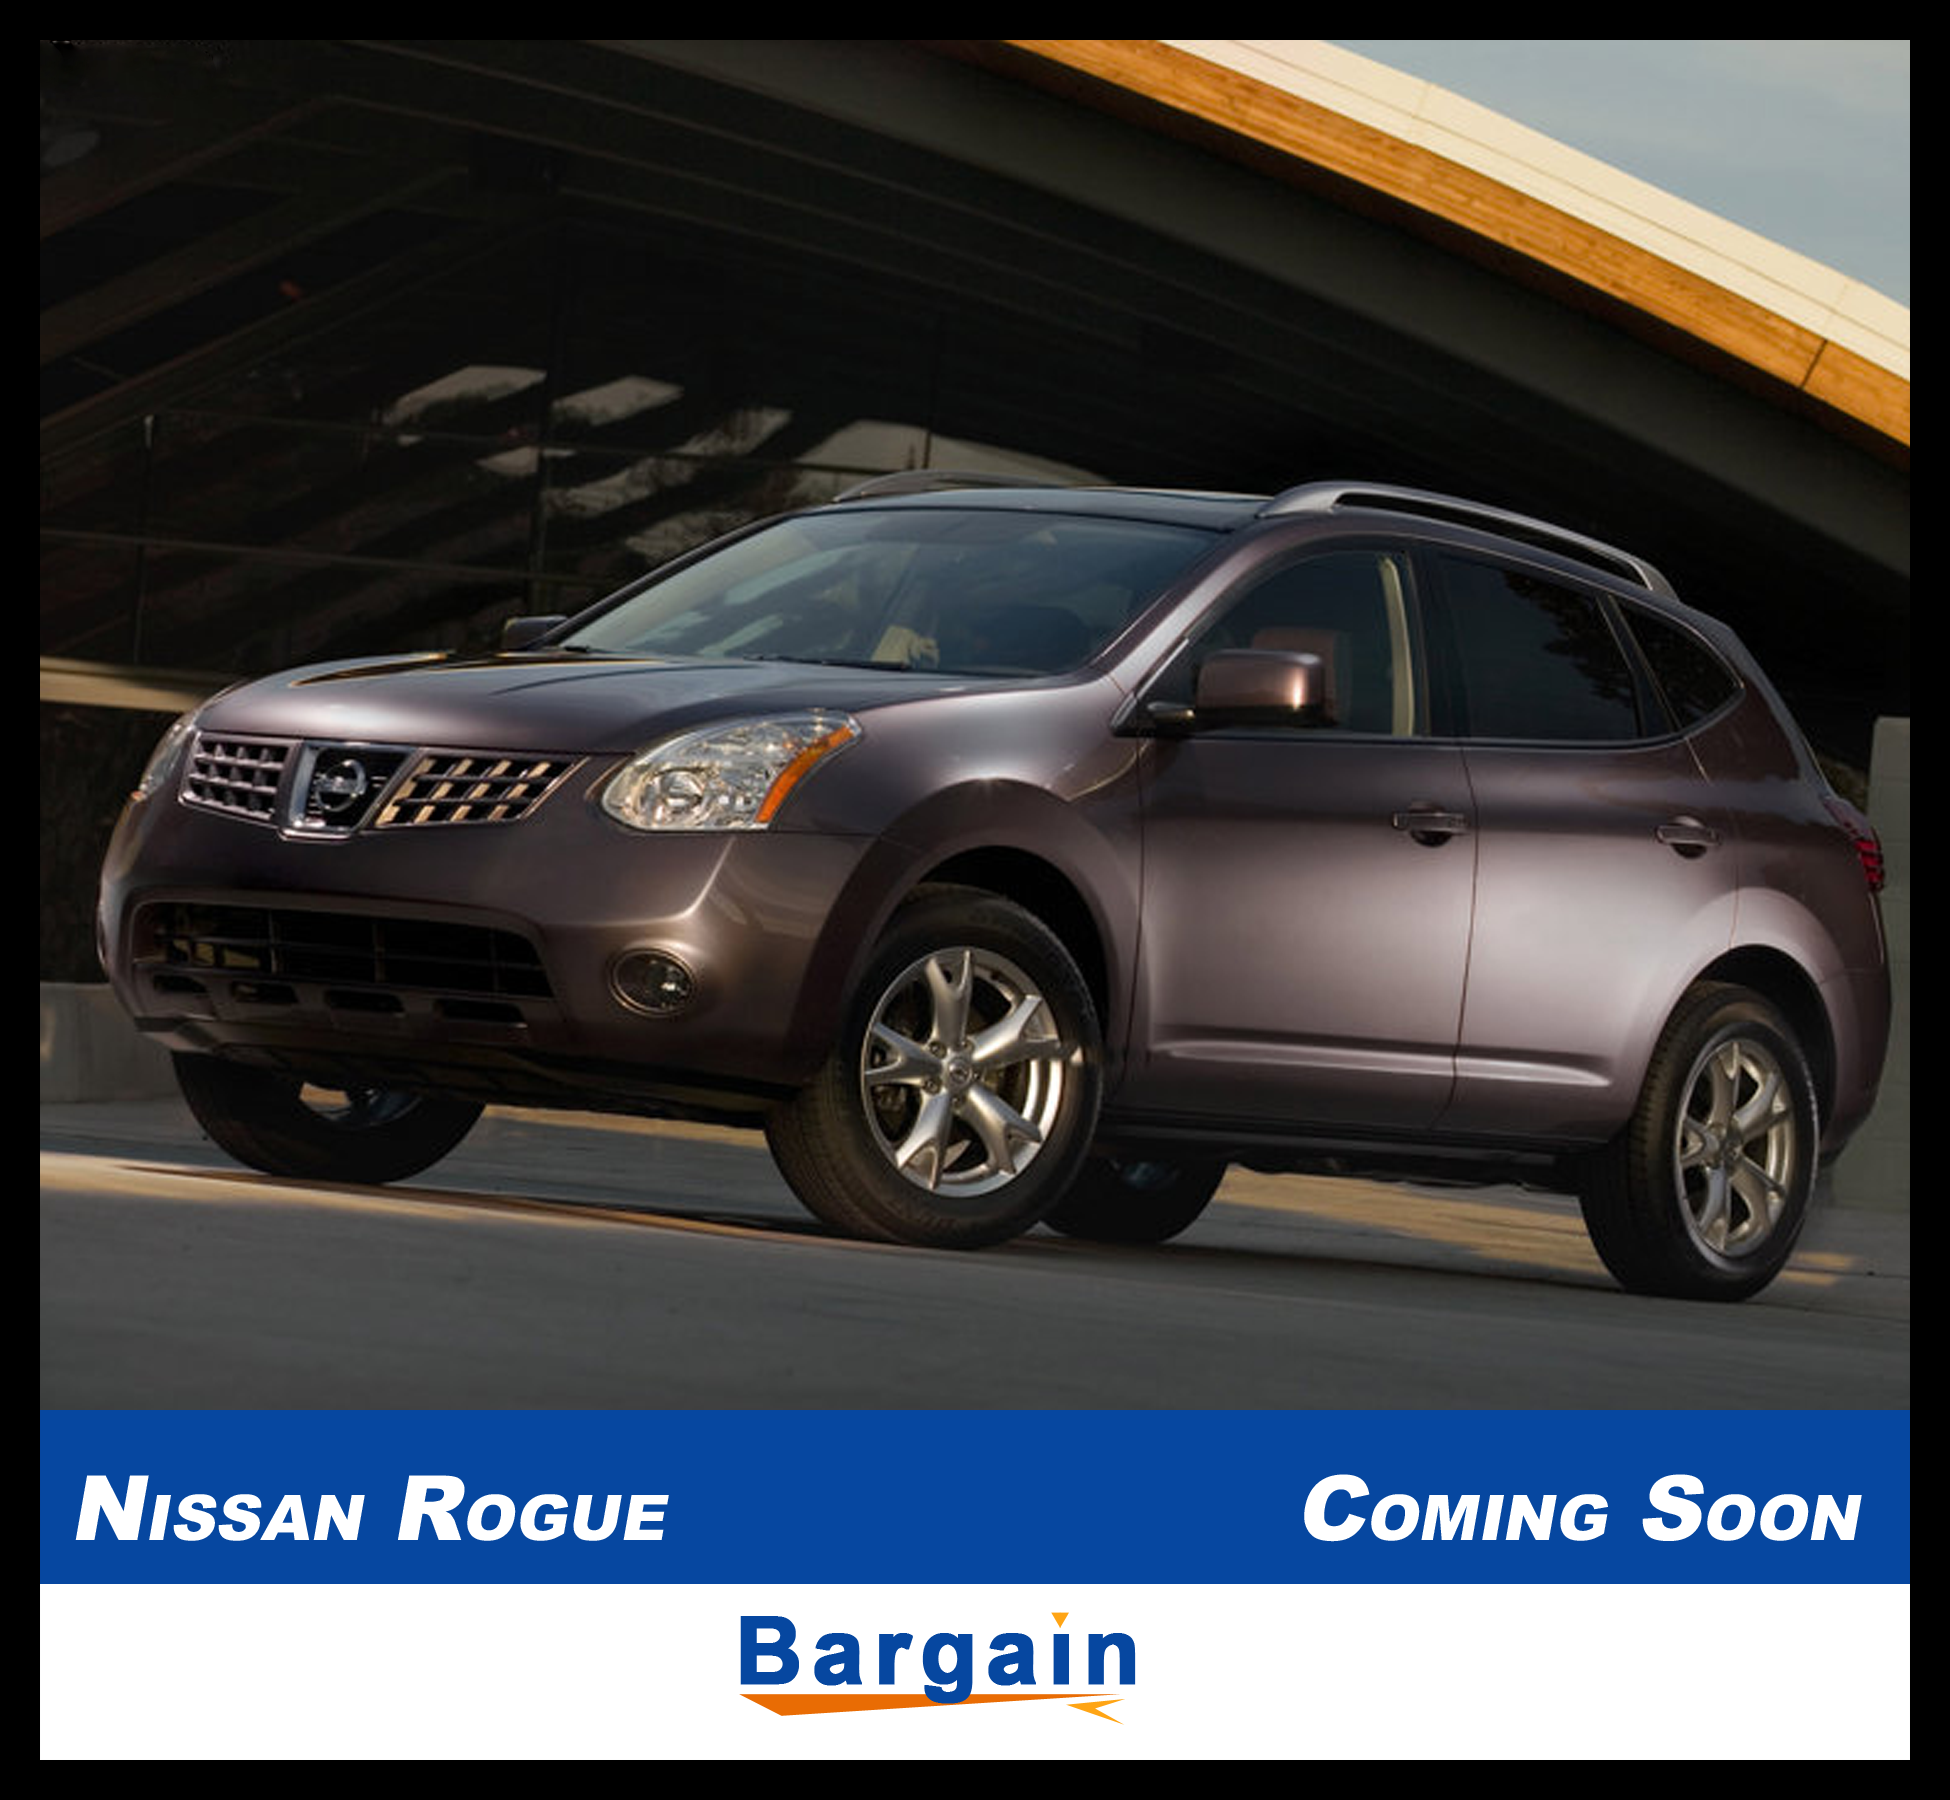 Coming soon.. Nissan Rogue! nissan rogue